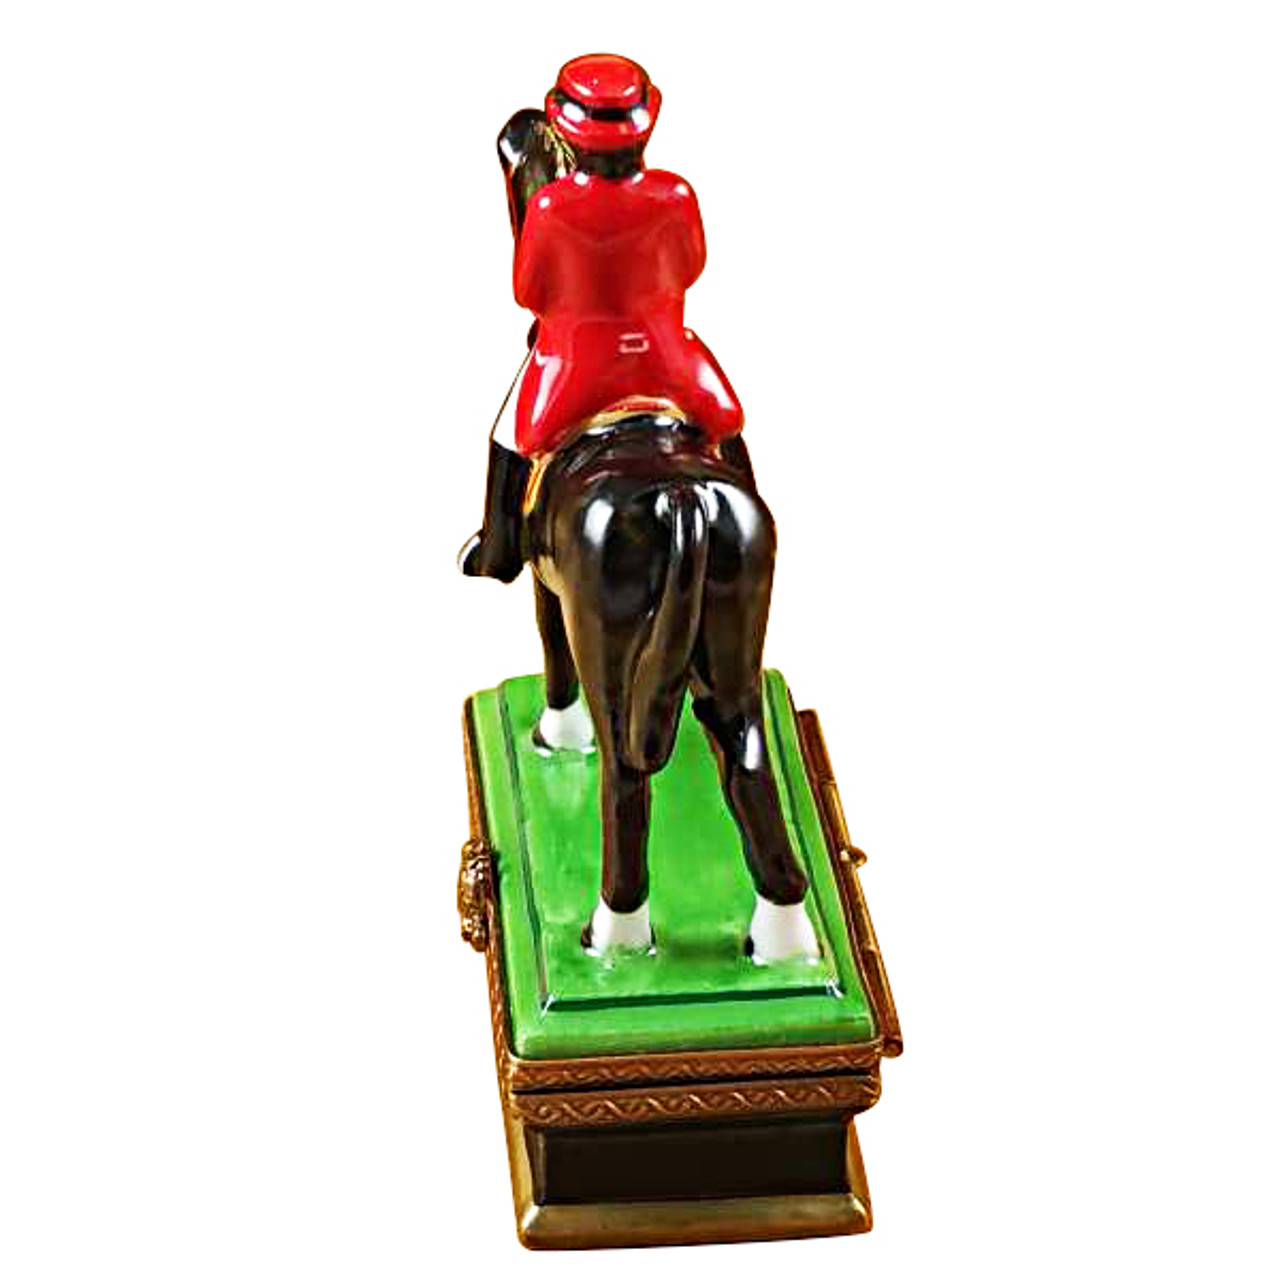 Horse With Rider - Dressage Rochard Limoges Box